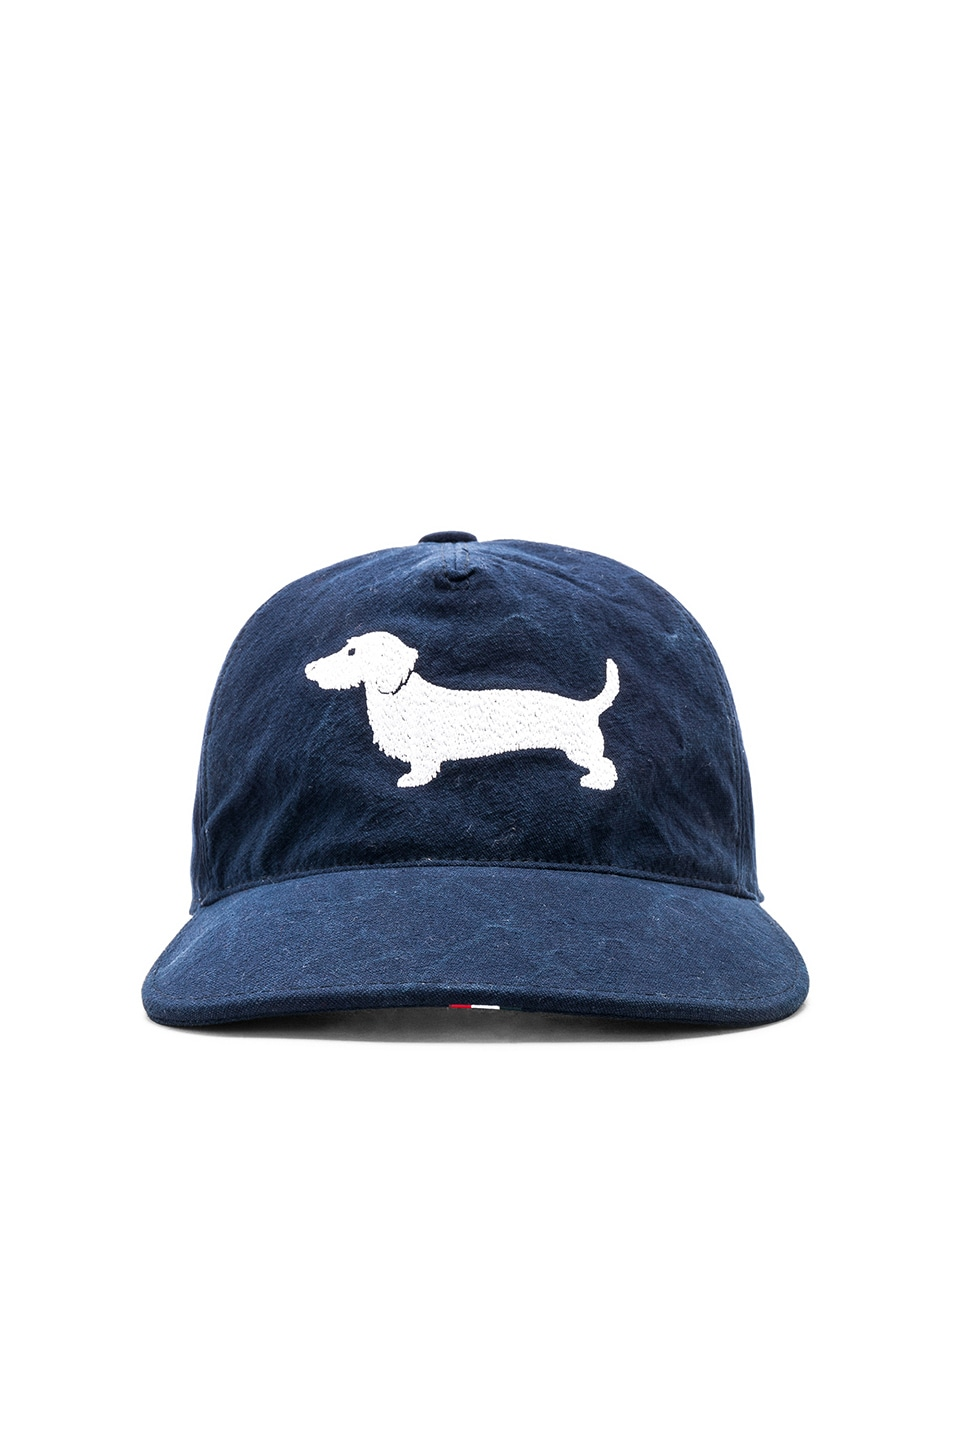 7d99ef25b1994 Image 1 of Thom Browne Embroidered Hector 5-Panel Baseball Cap in Navy